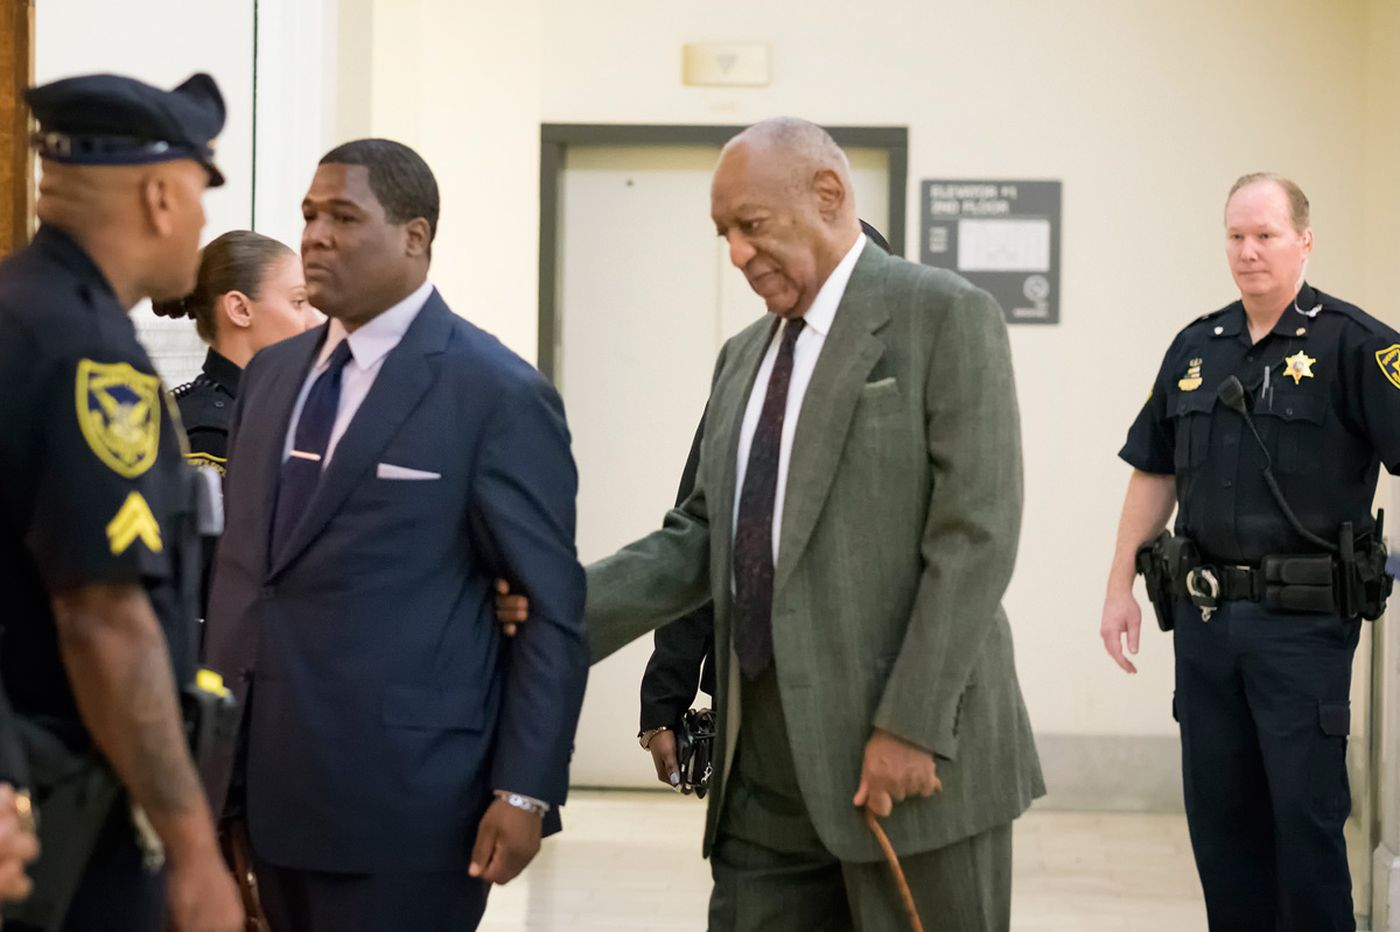 Cosby loses bid to block prosecutors from using his deposition at sex-assault trial